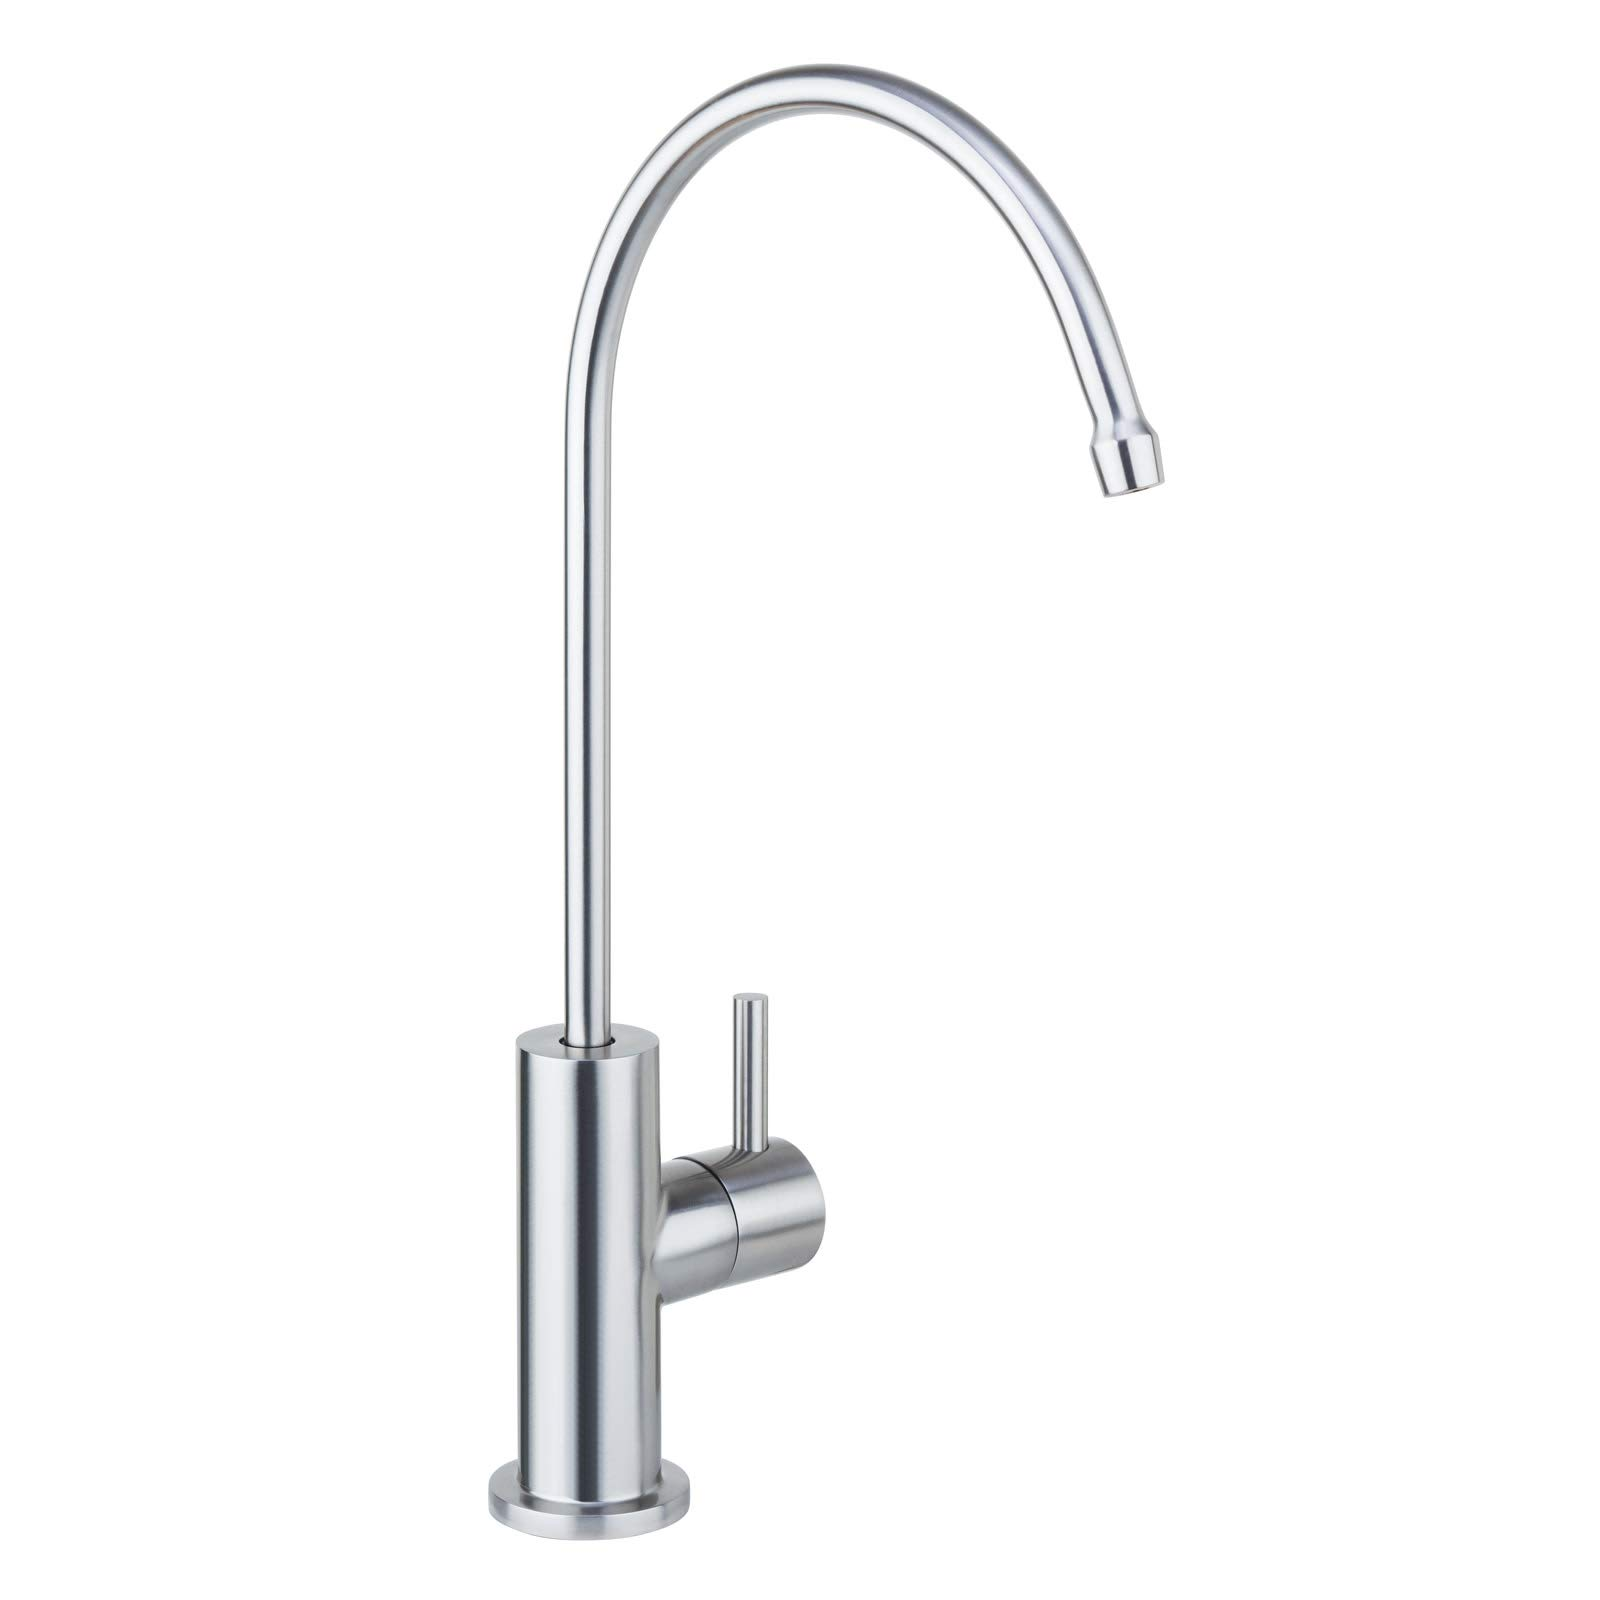 Miseno MWD007-B Gemma 1.8 GPM Water Dispenser Faucet with T304 Stainless Steel Construction